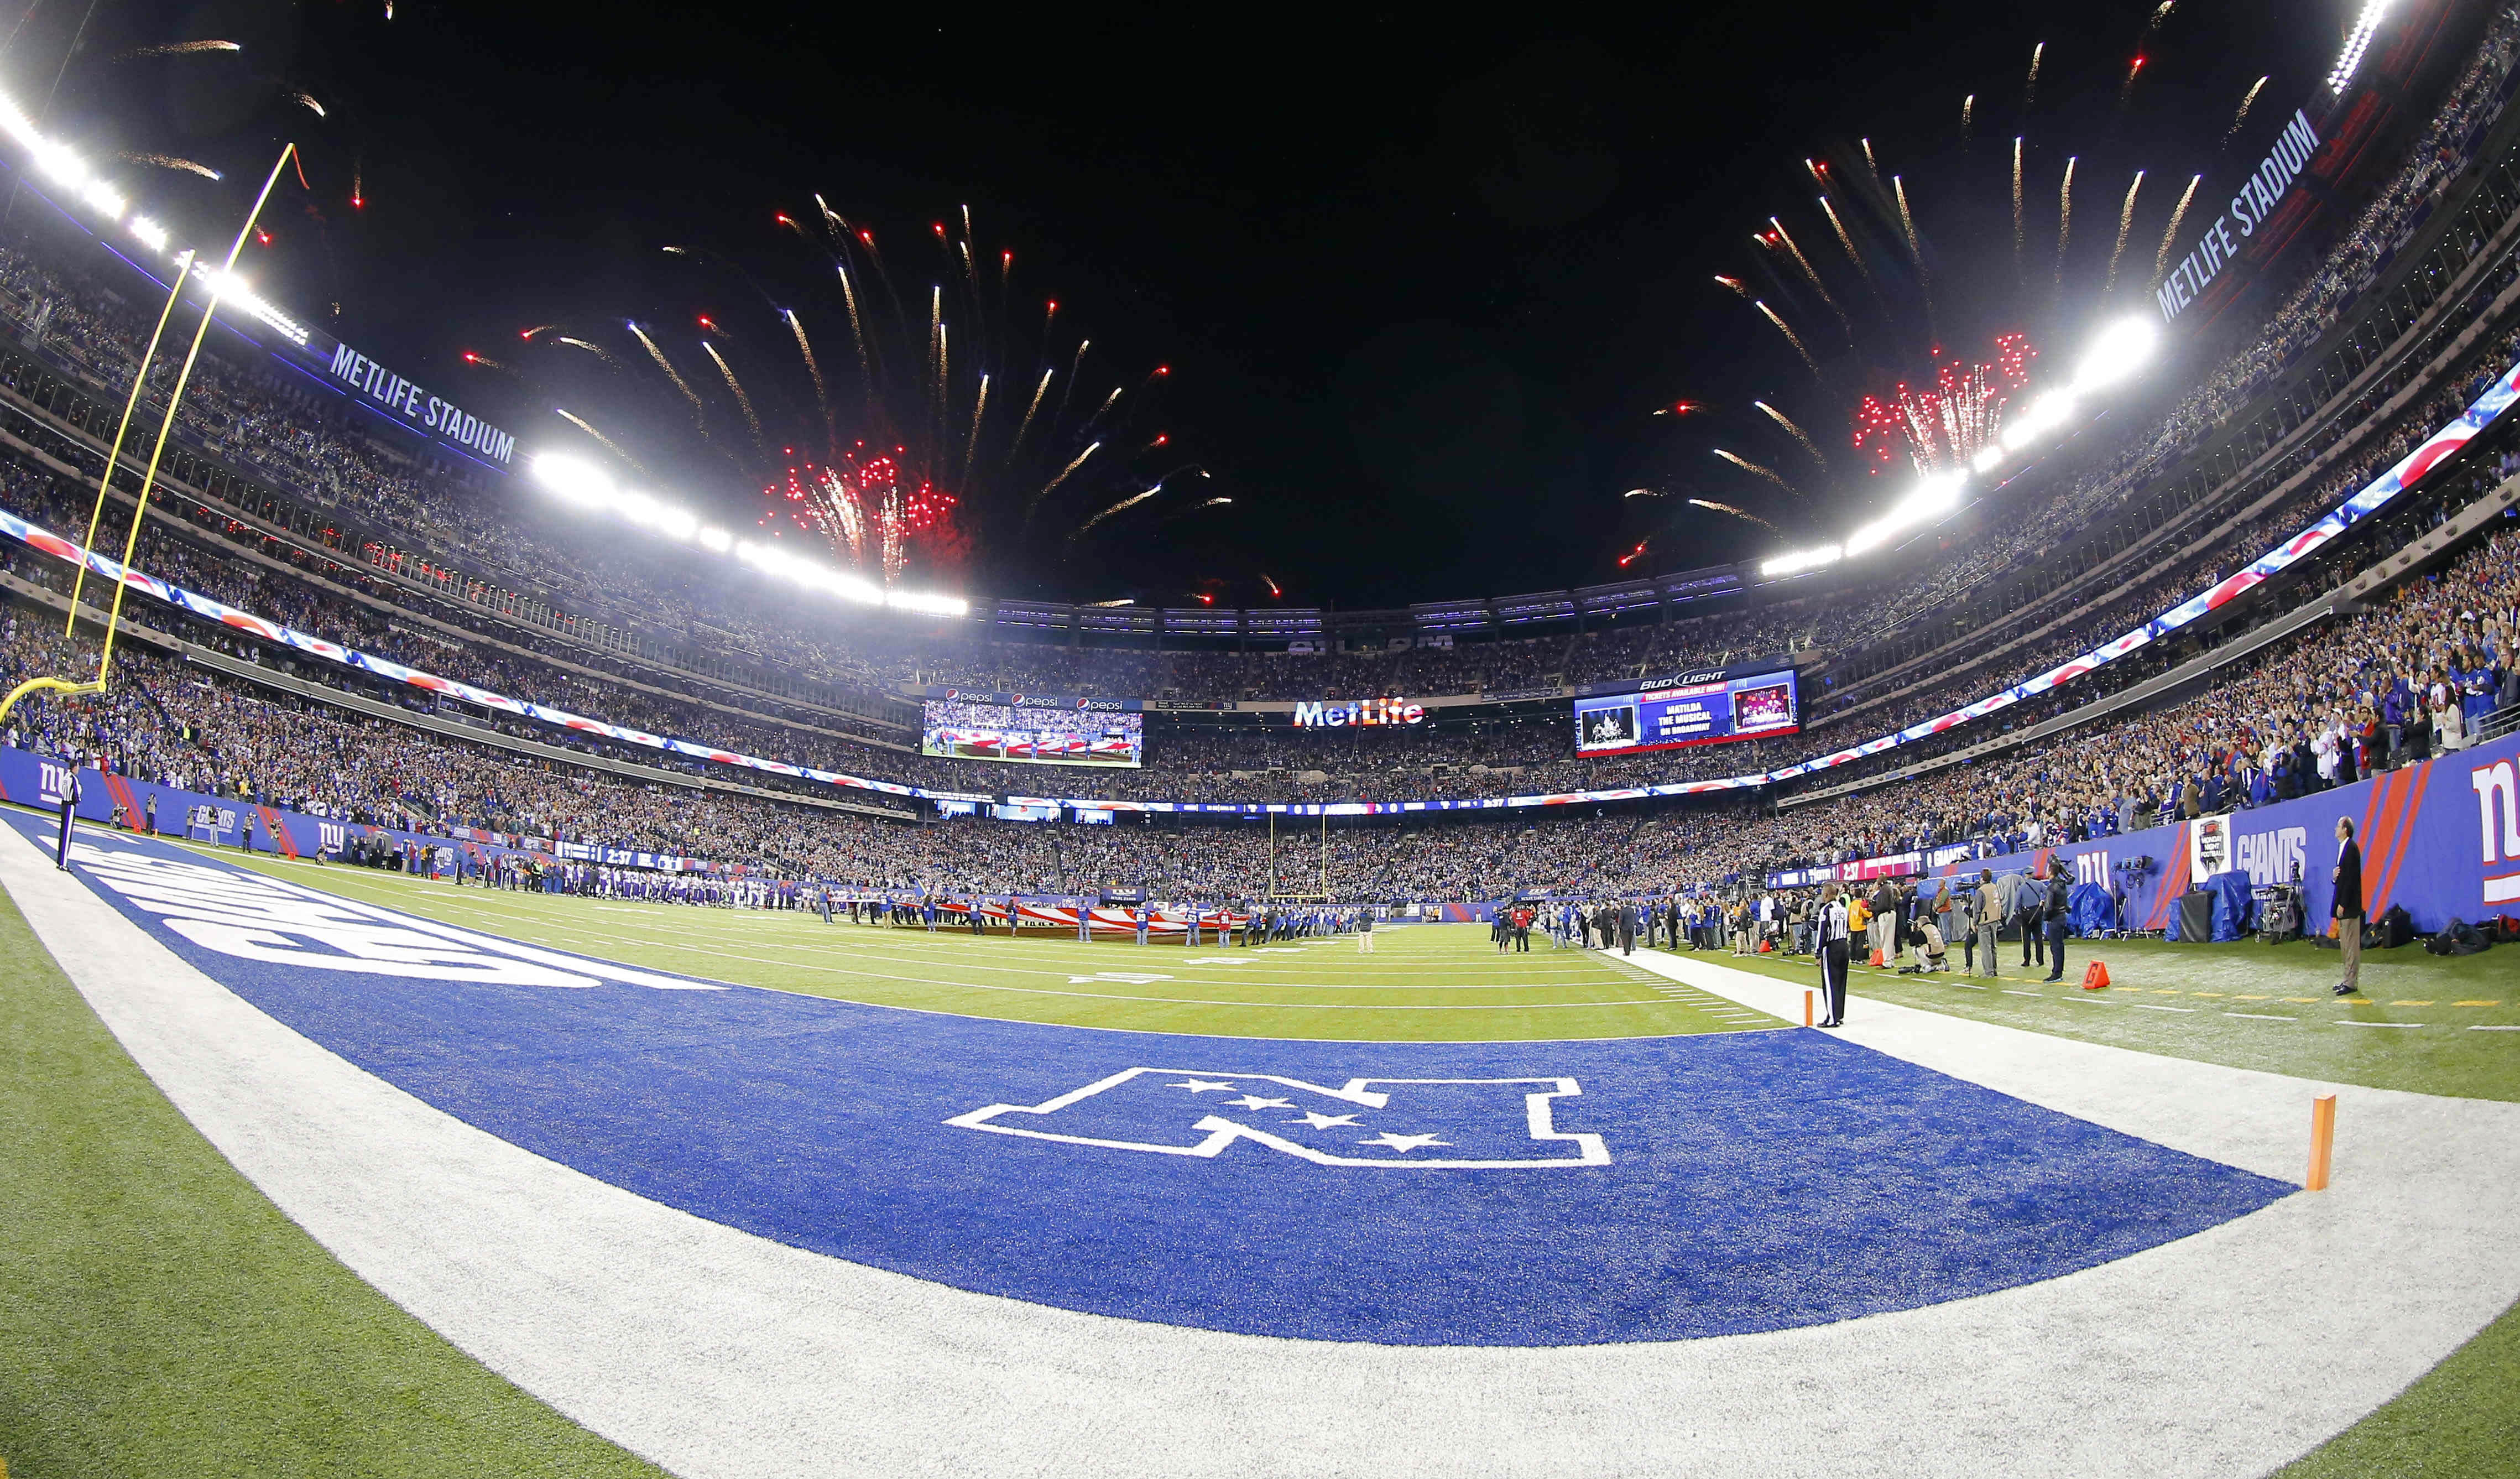 Fireworks?  Well, at least someone is celebrating wins in the NFL.